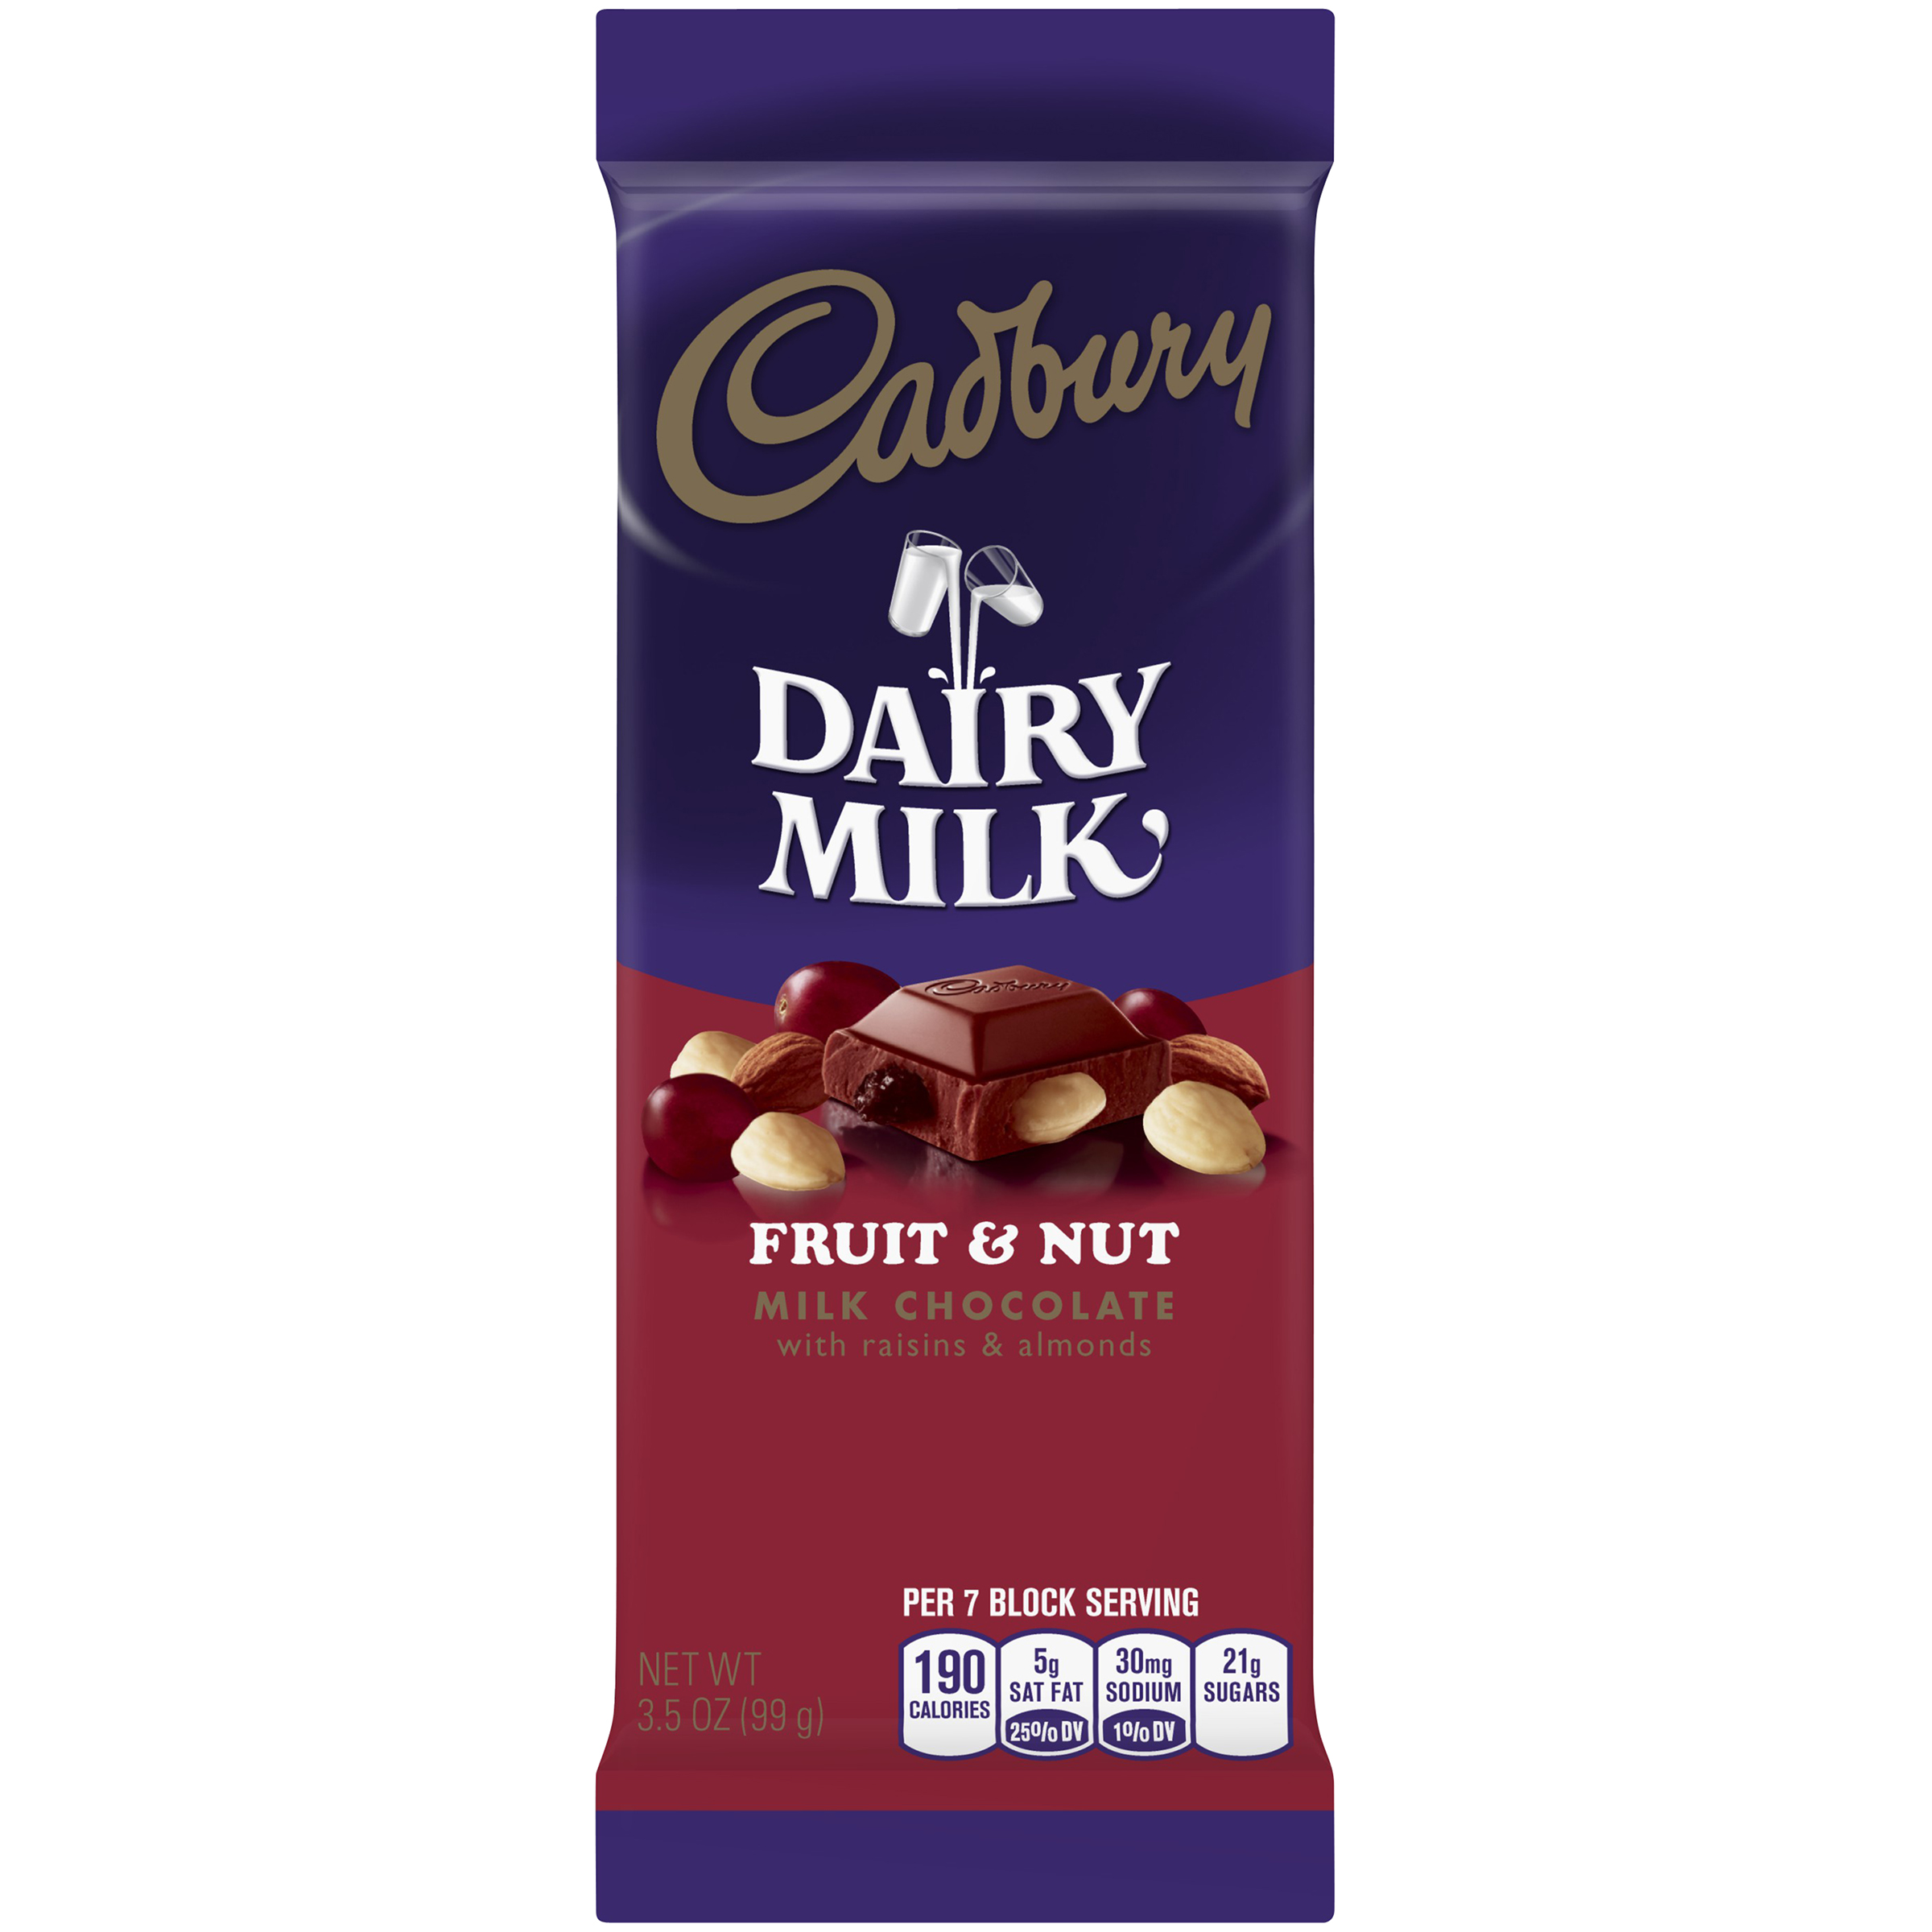 Cadbury Dairy Milk Fruit & Nut Milk Chocolate